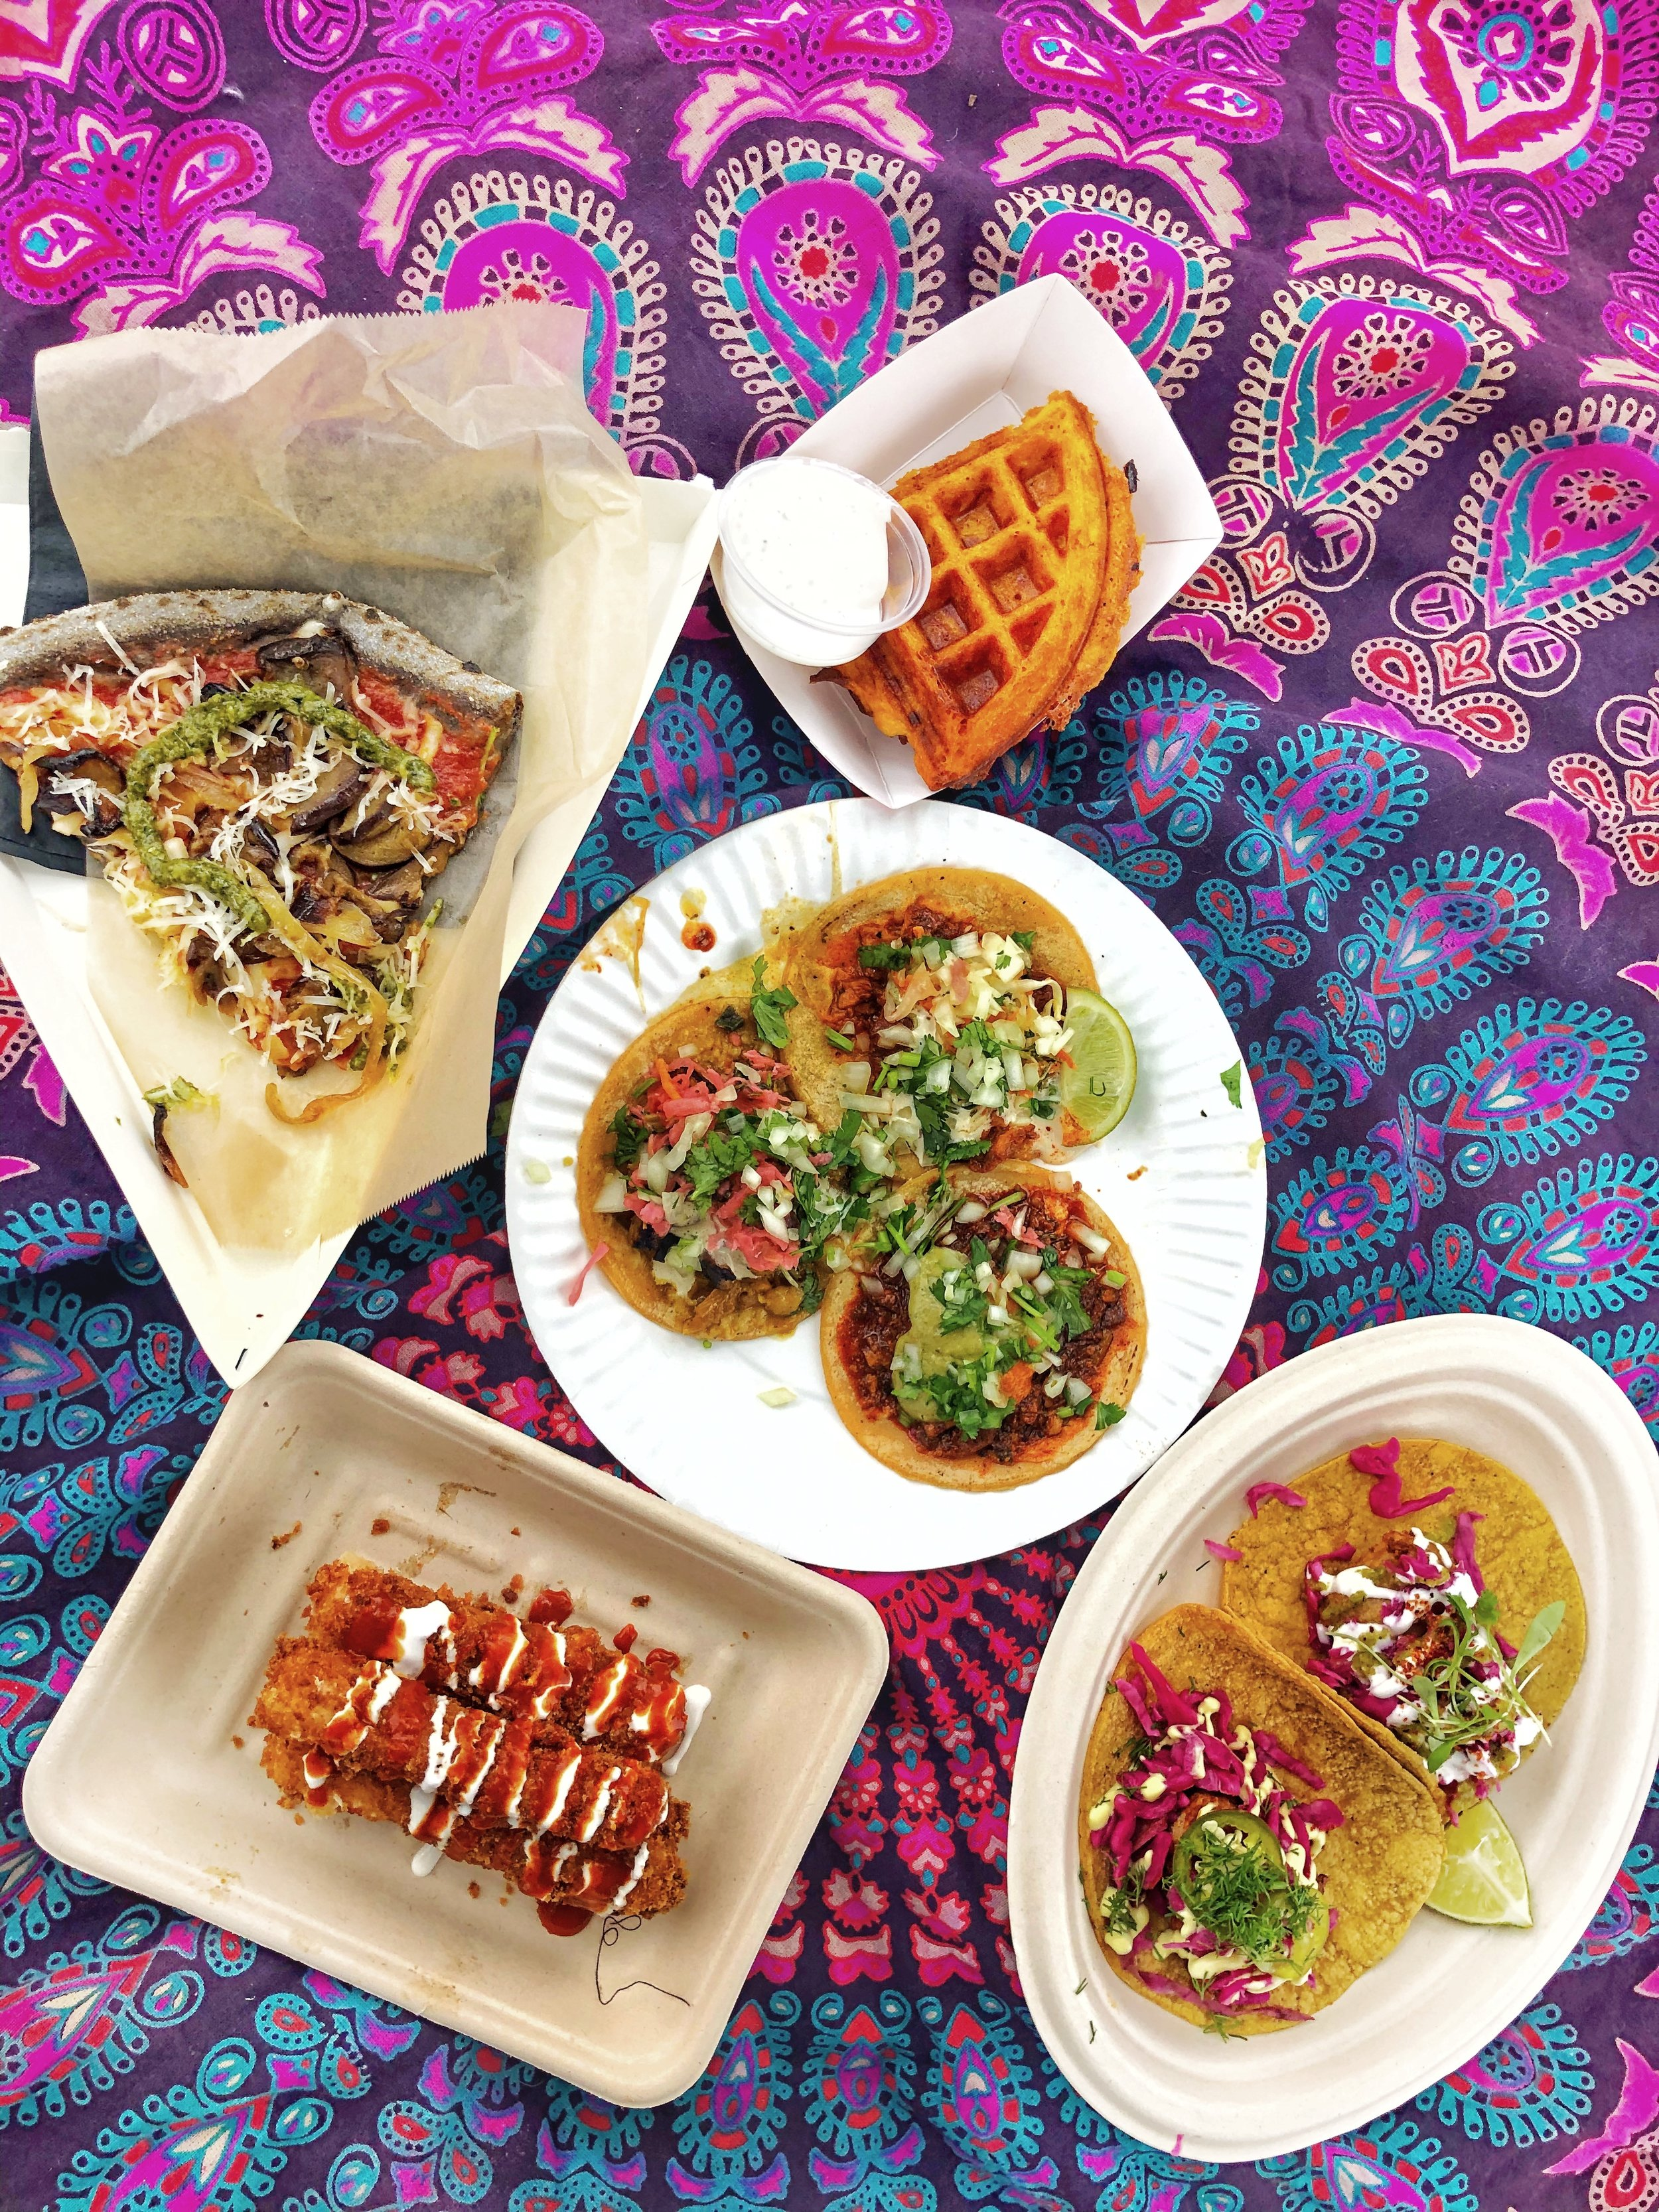 Top to Bottom: Clara Cake's Mac and Cheese Waffle, PIcky Wops, Charly's Vegan Tacos, Club Mexicano